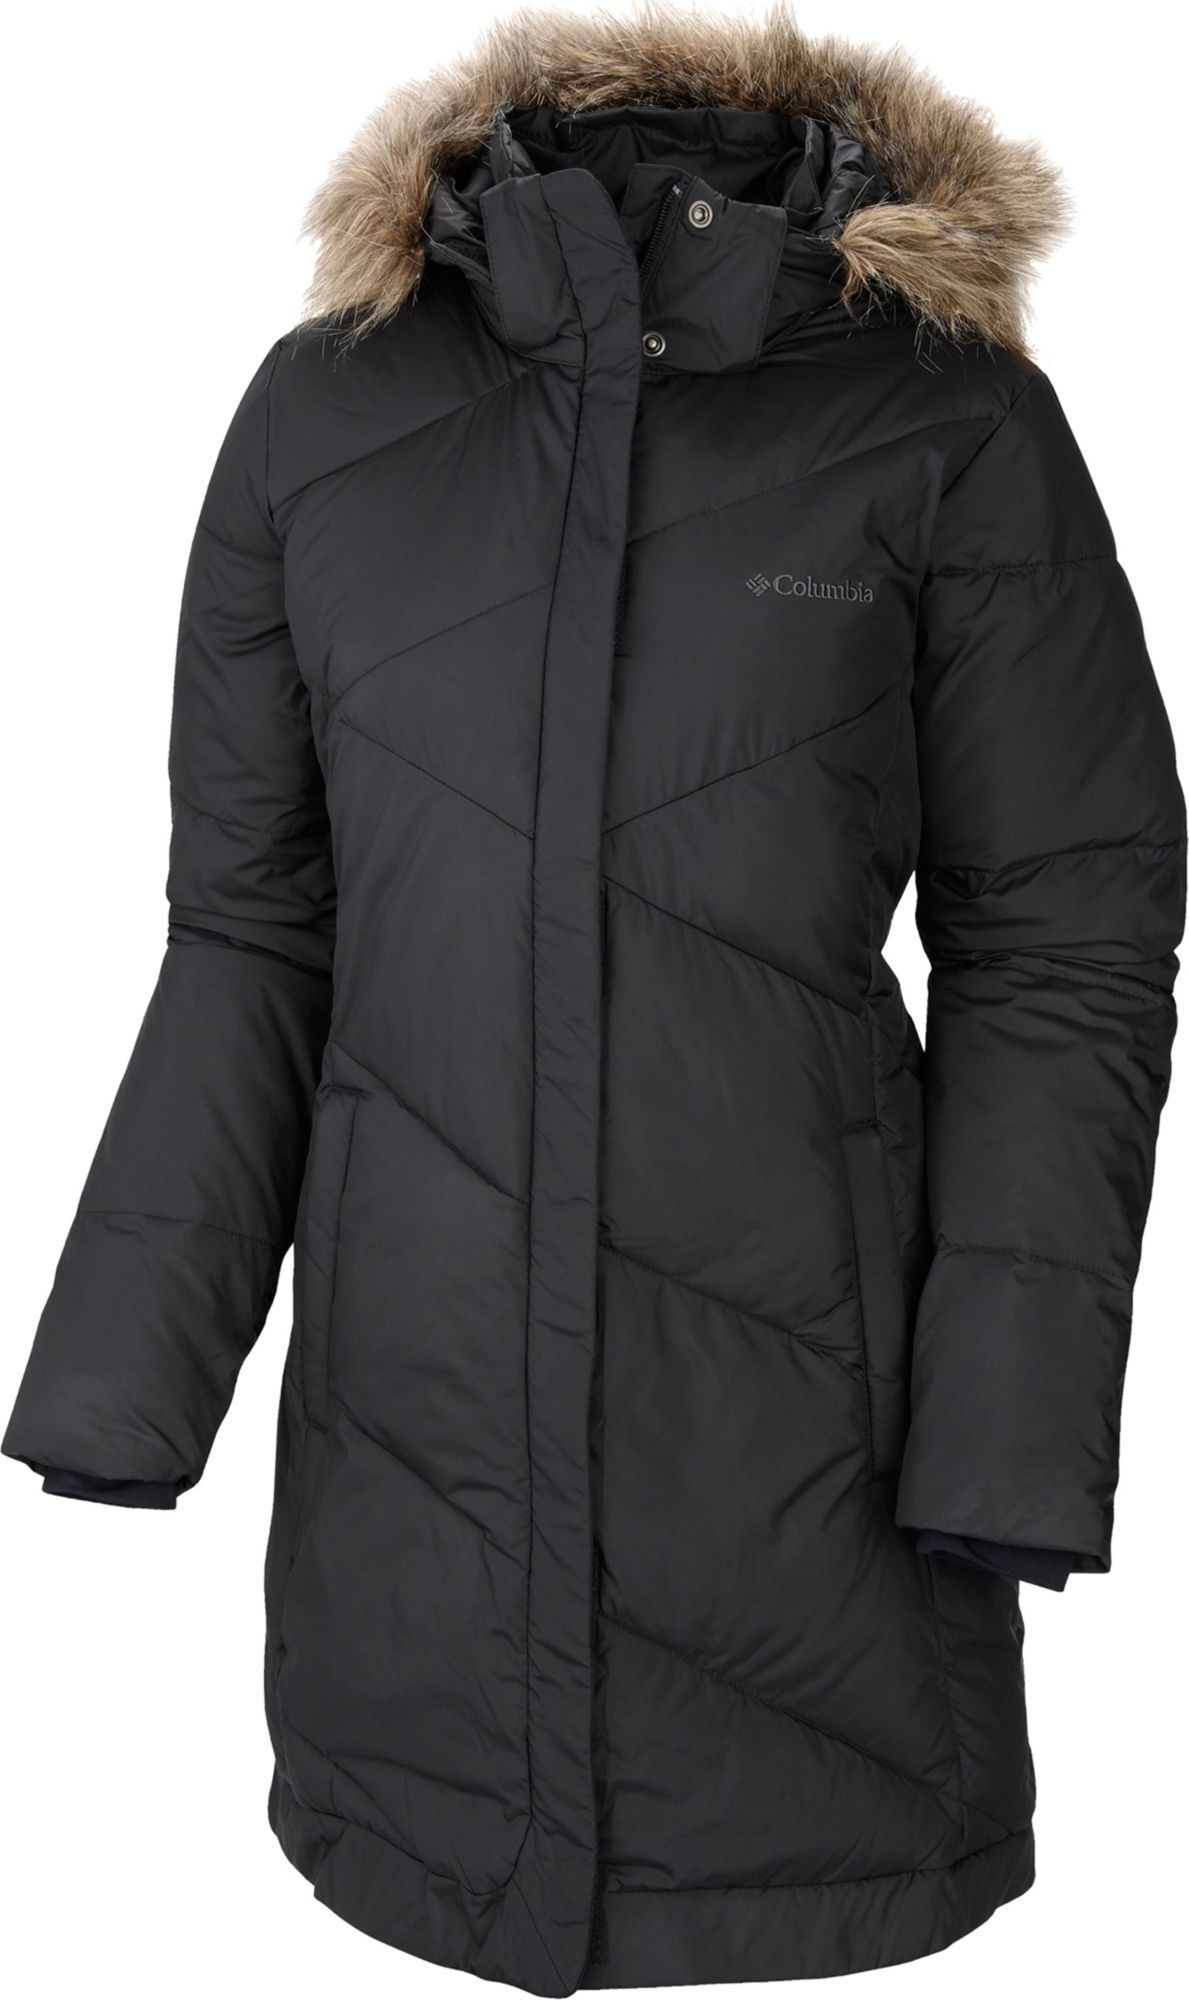 b8e472b306 Columbia Women s Snow Eclipse Mid Insulated Jacket in 2019 ...